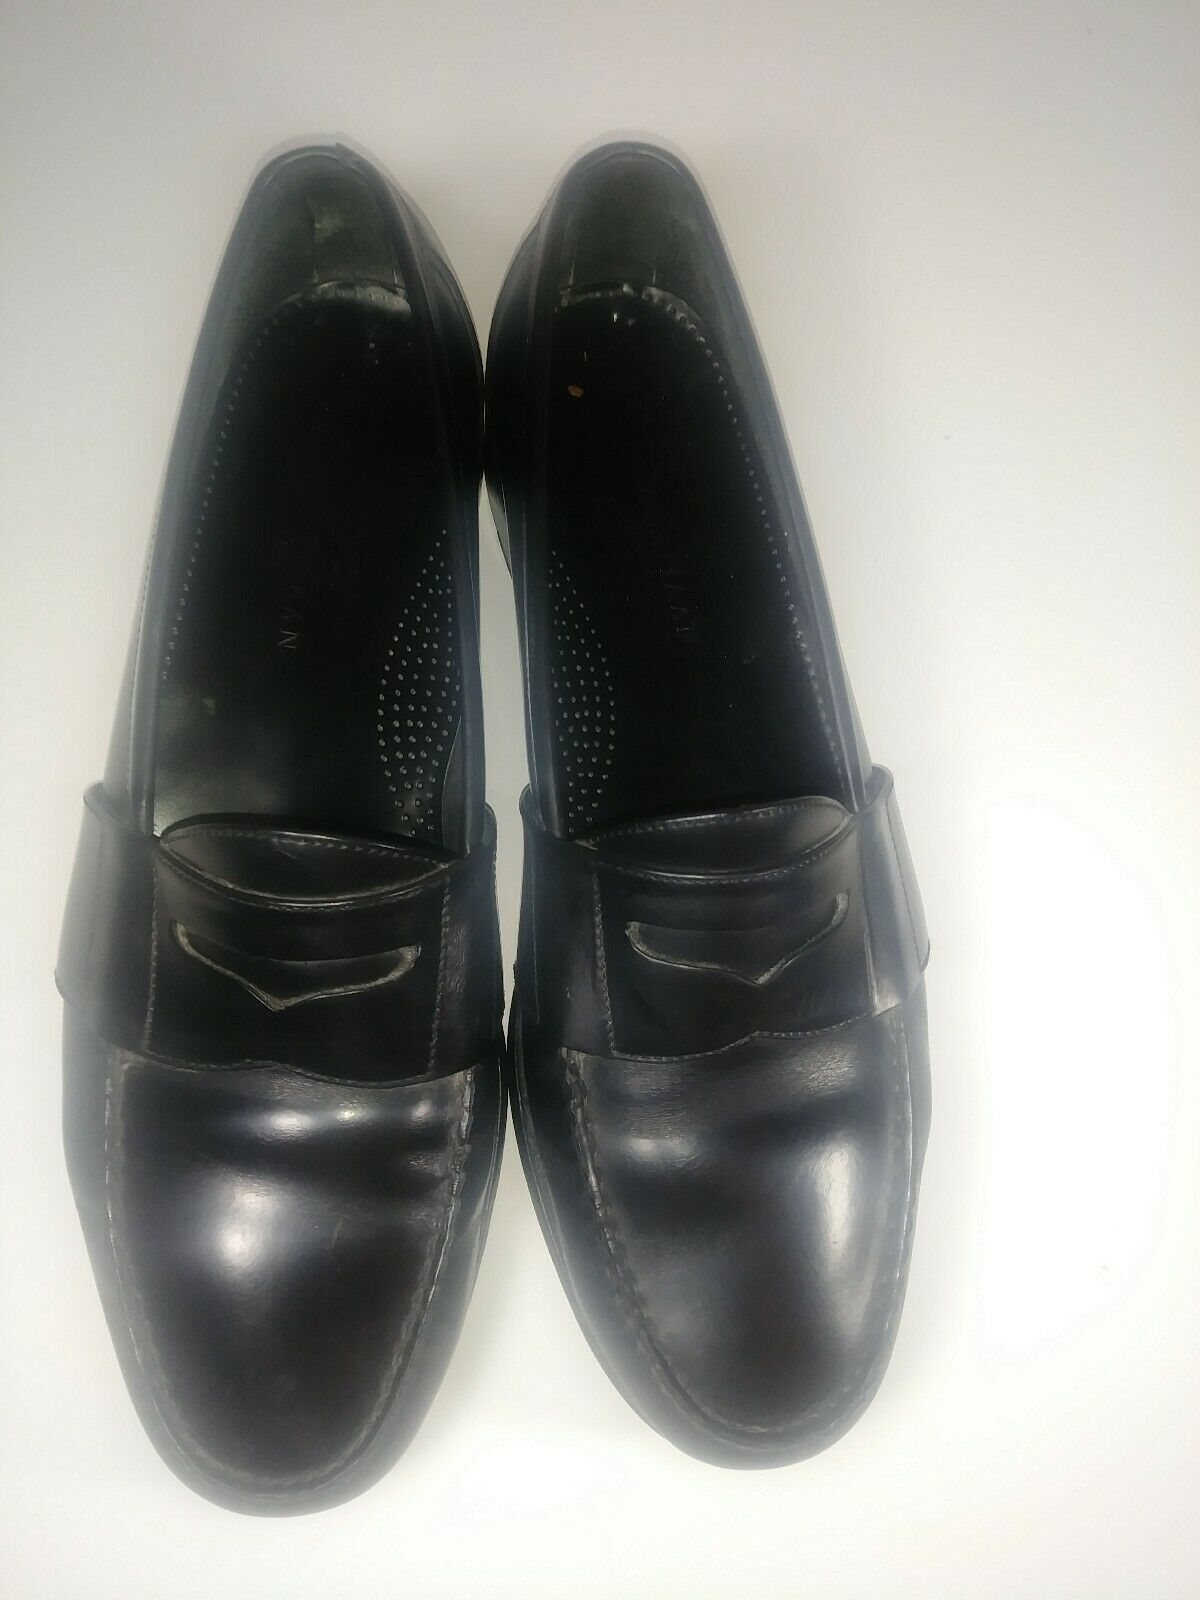 Mens Cole Haan Pinch Penny Dress Shoes Loafers Size 12 MSRP $200